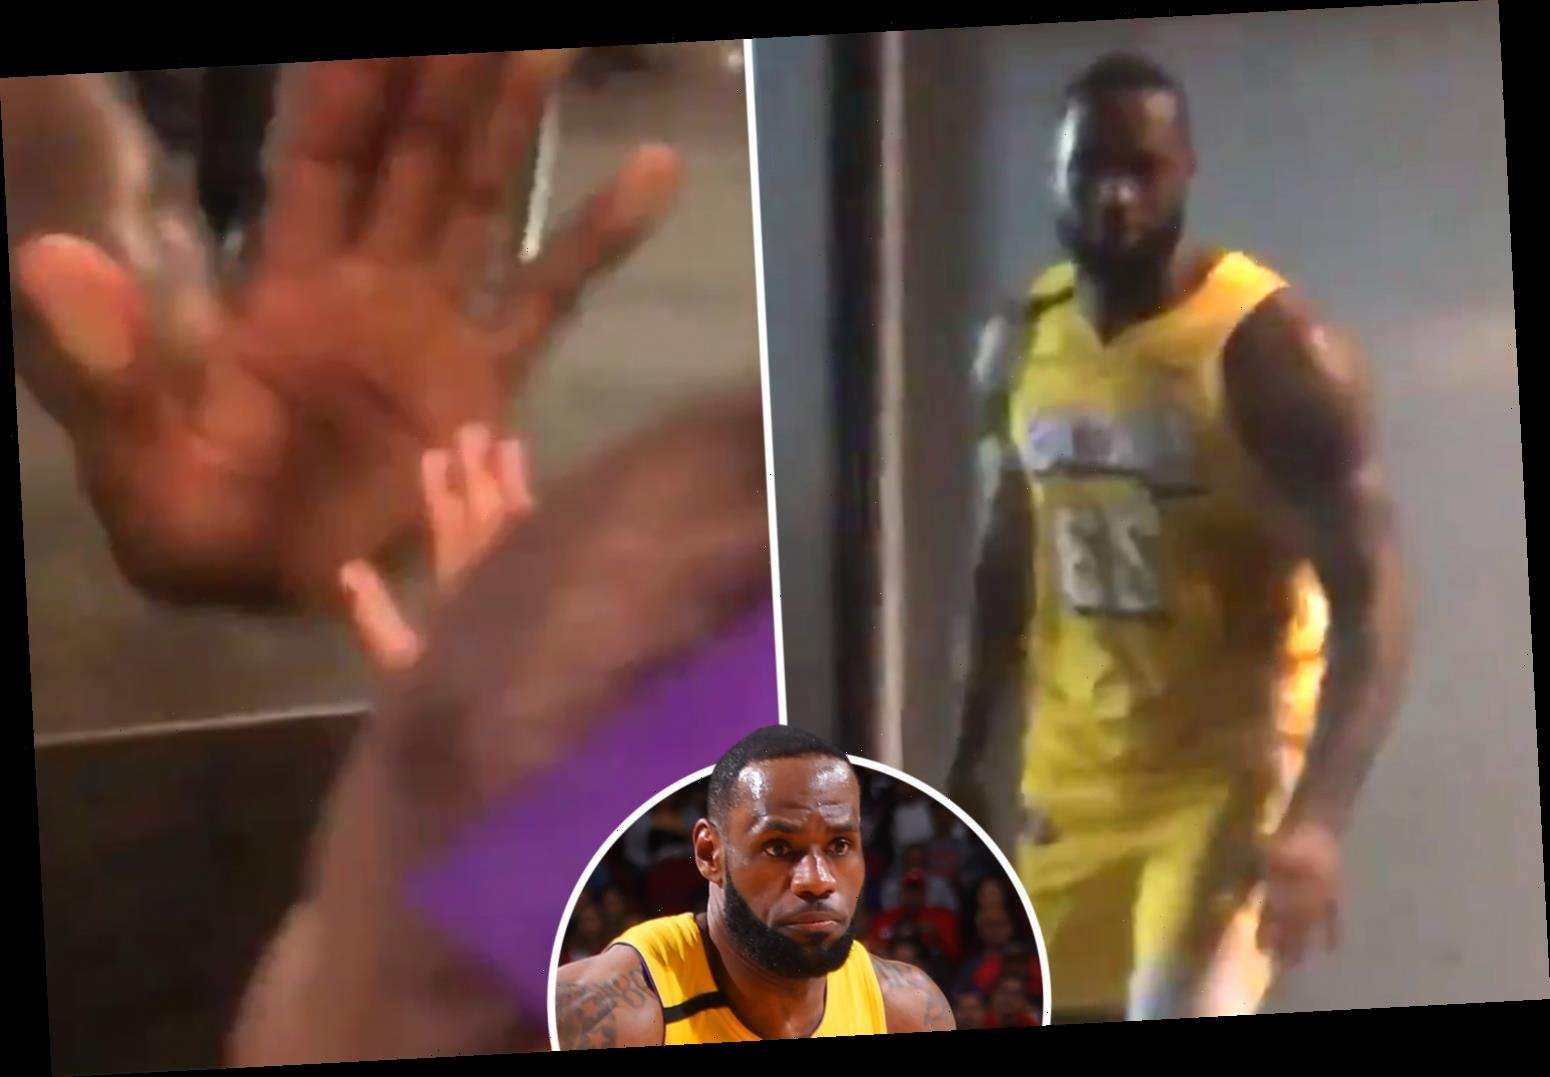 NBA megastar LeBron James stops to high-five adorable young fan after Los Angeles Lakers win against Houston Rockets – The Sun